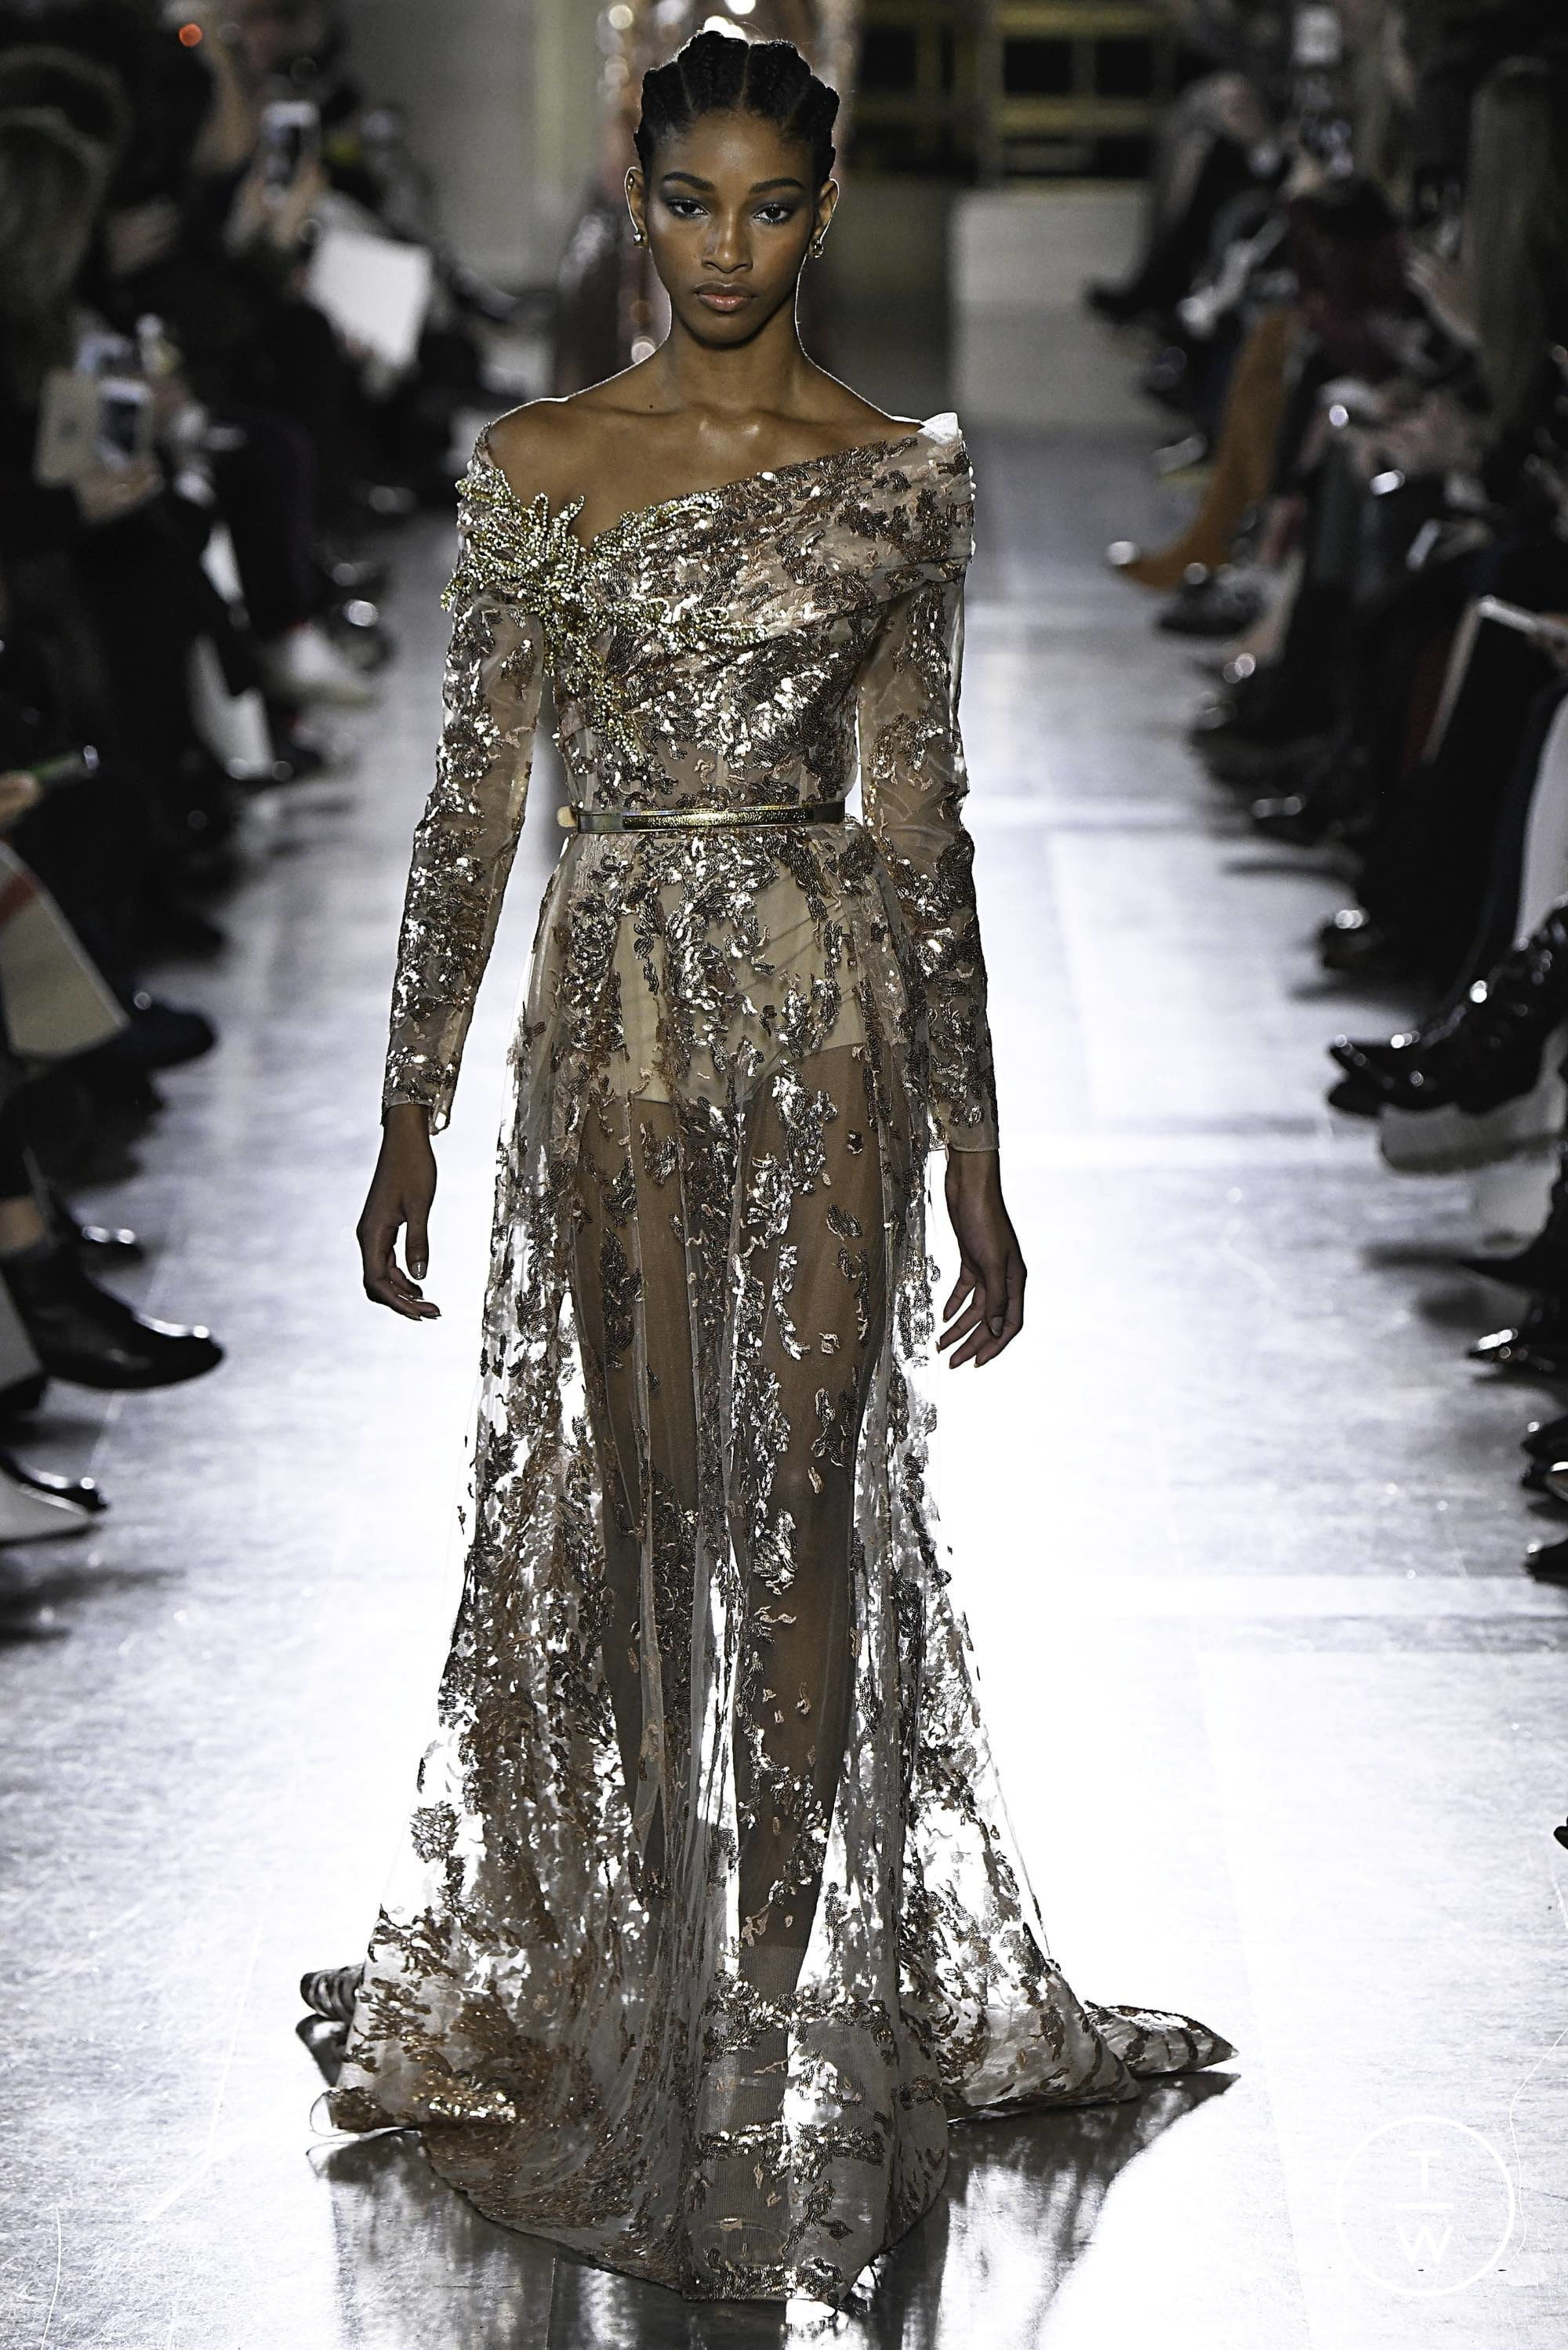 Elie Saab S S19 Couture 42 The Fashion Search Engine Tagwalk